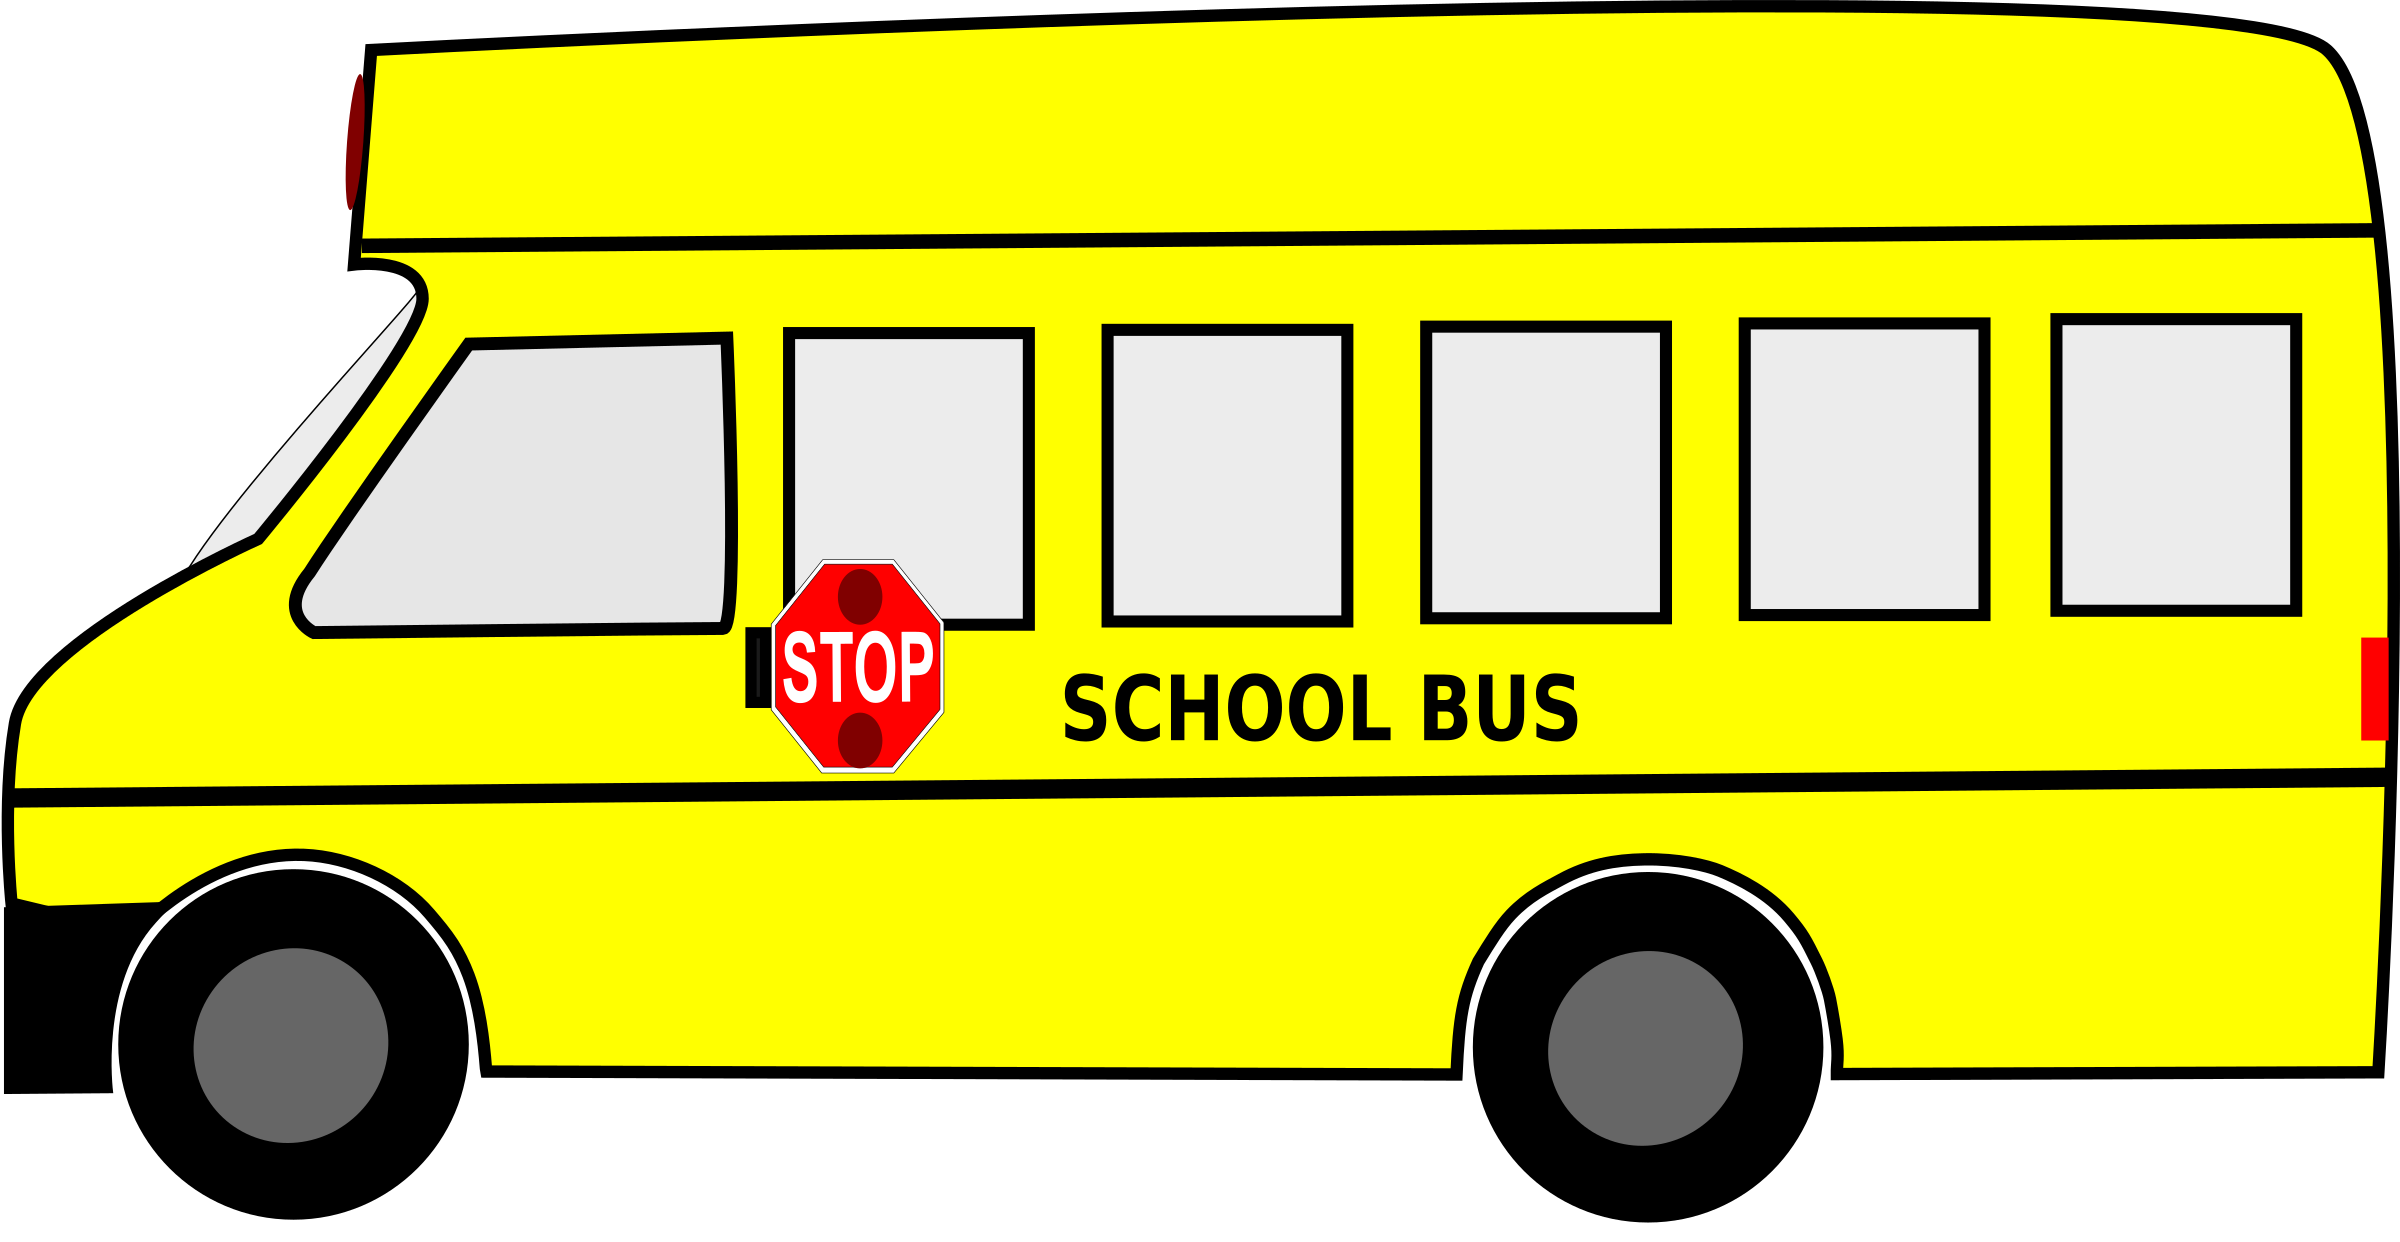 Moving school bus svg. Animated png download clip art freeuse library